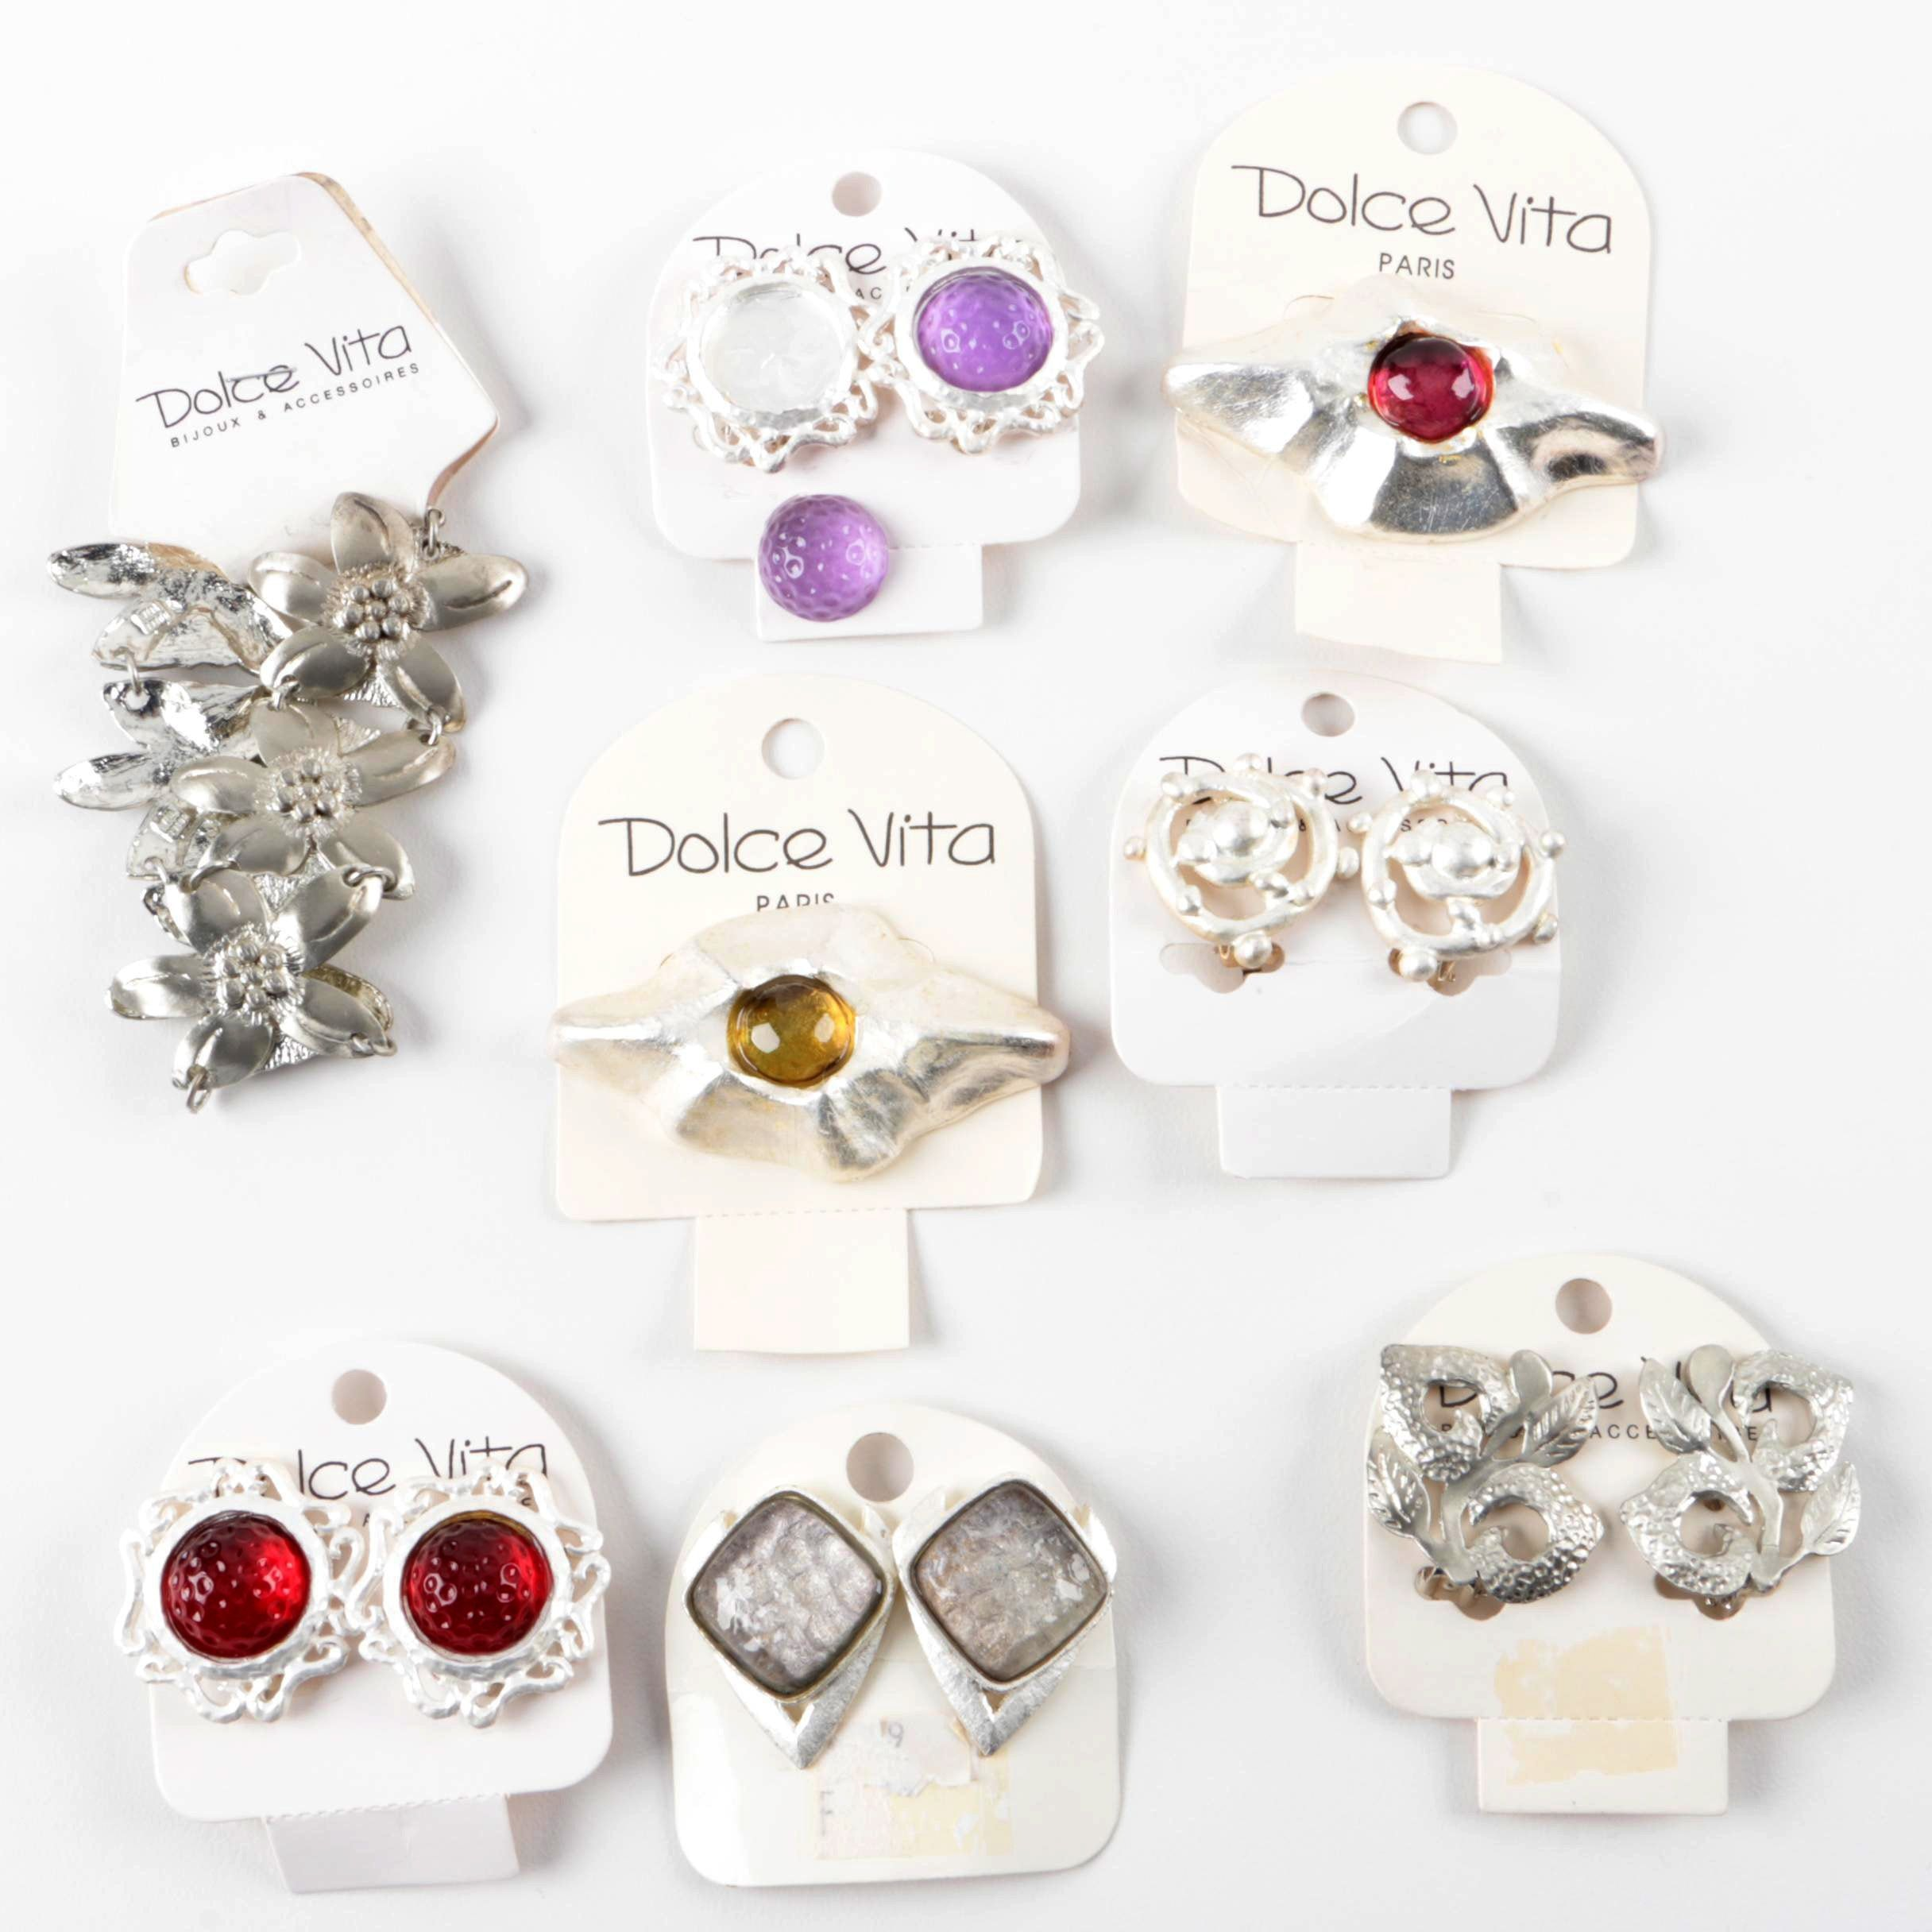 Assortment of Dolce Vita Earrings, Bracelets, and Brooches